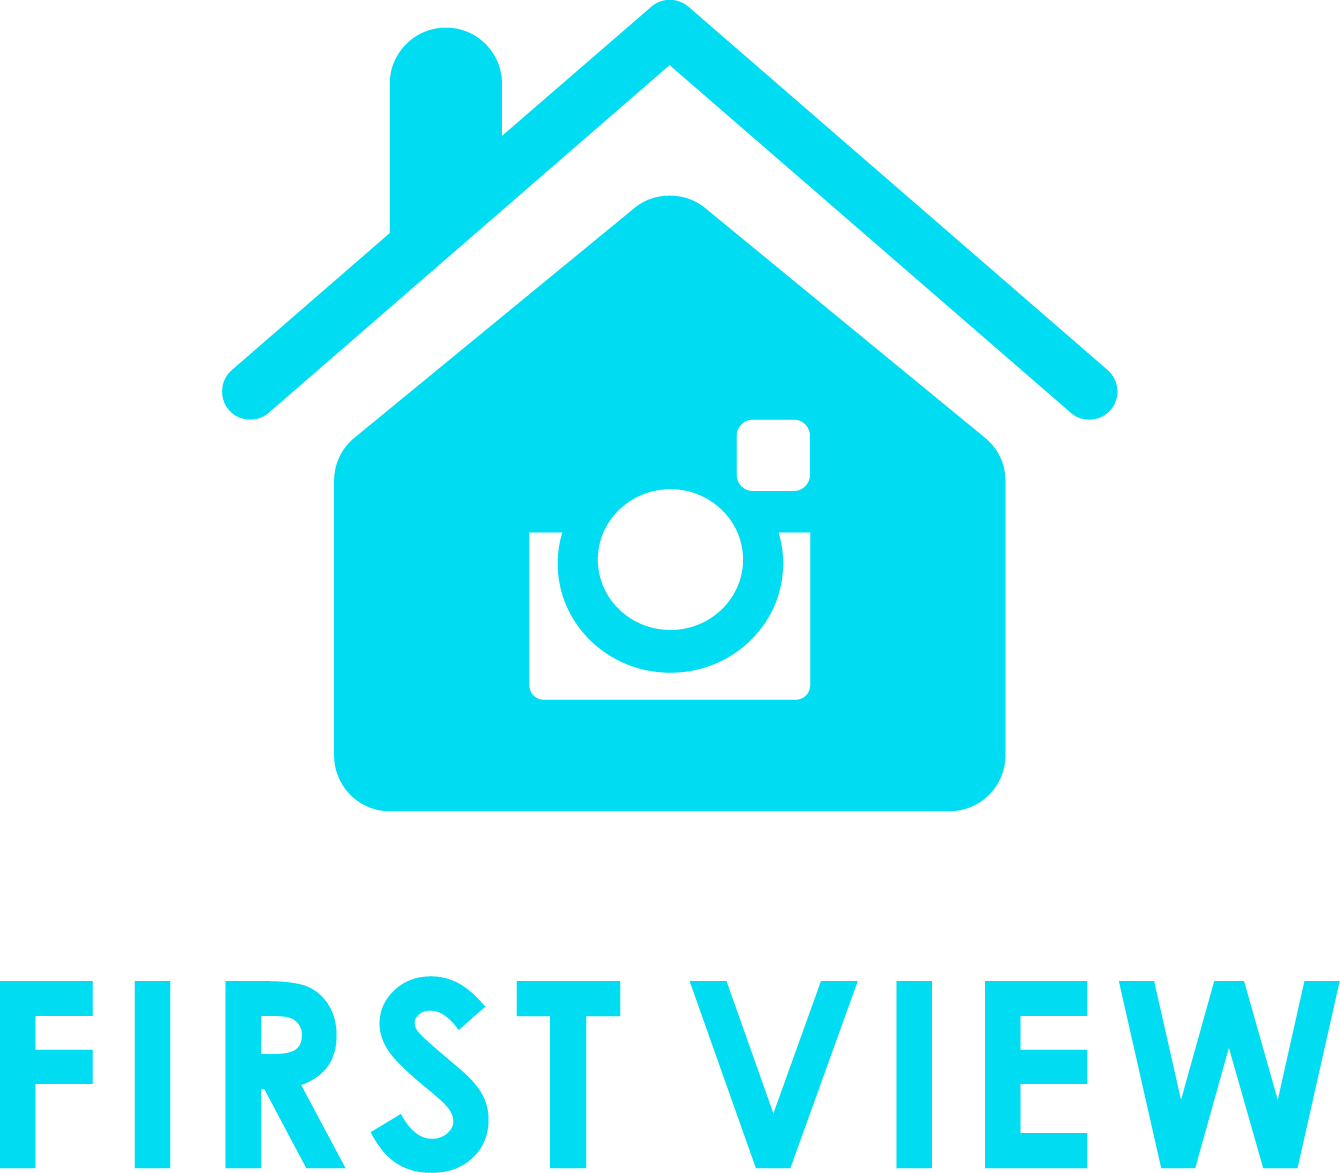 First View